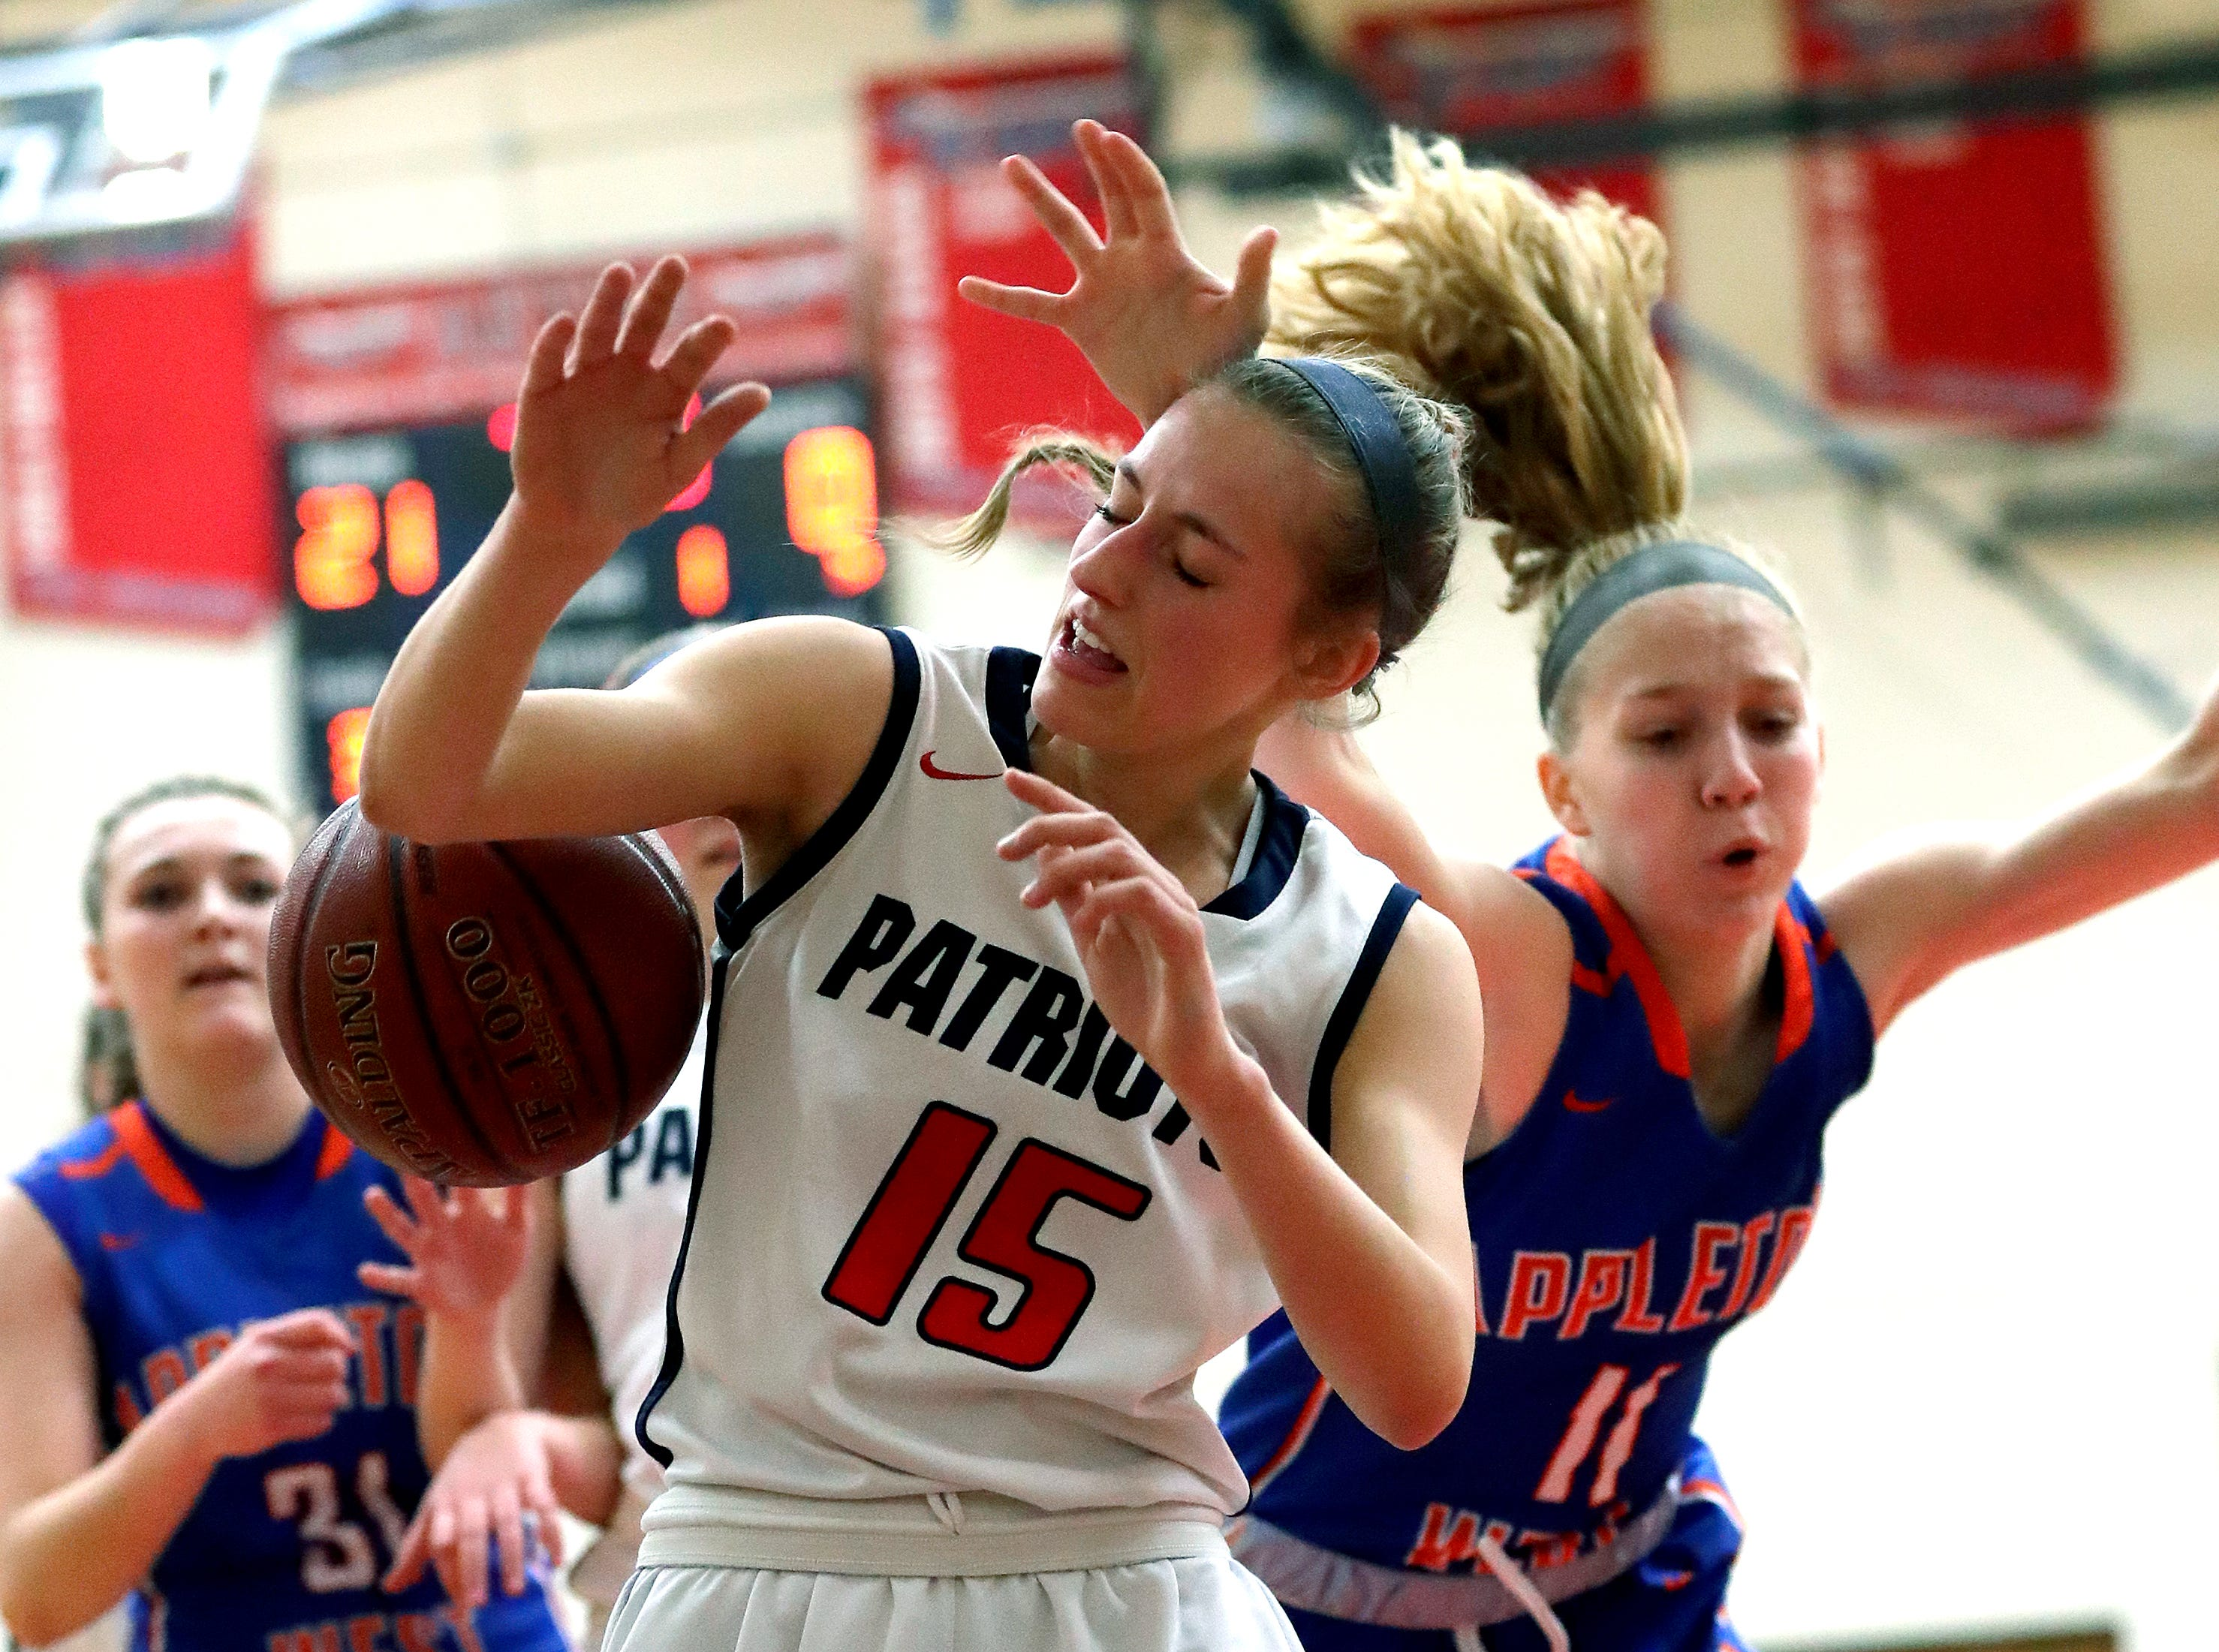 Appleton East High School's Meghan Borowski (15) and Appleton West High School's Jamie Winsted (11) collide under the basket during their girls basketball game Friday, January 11, 2019, at Appleton East High School in Appleton, Wis. 